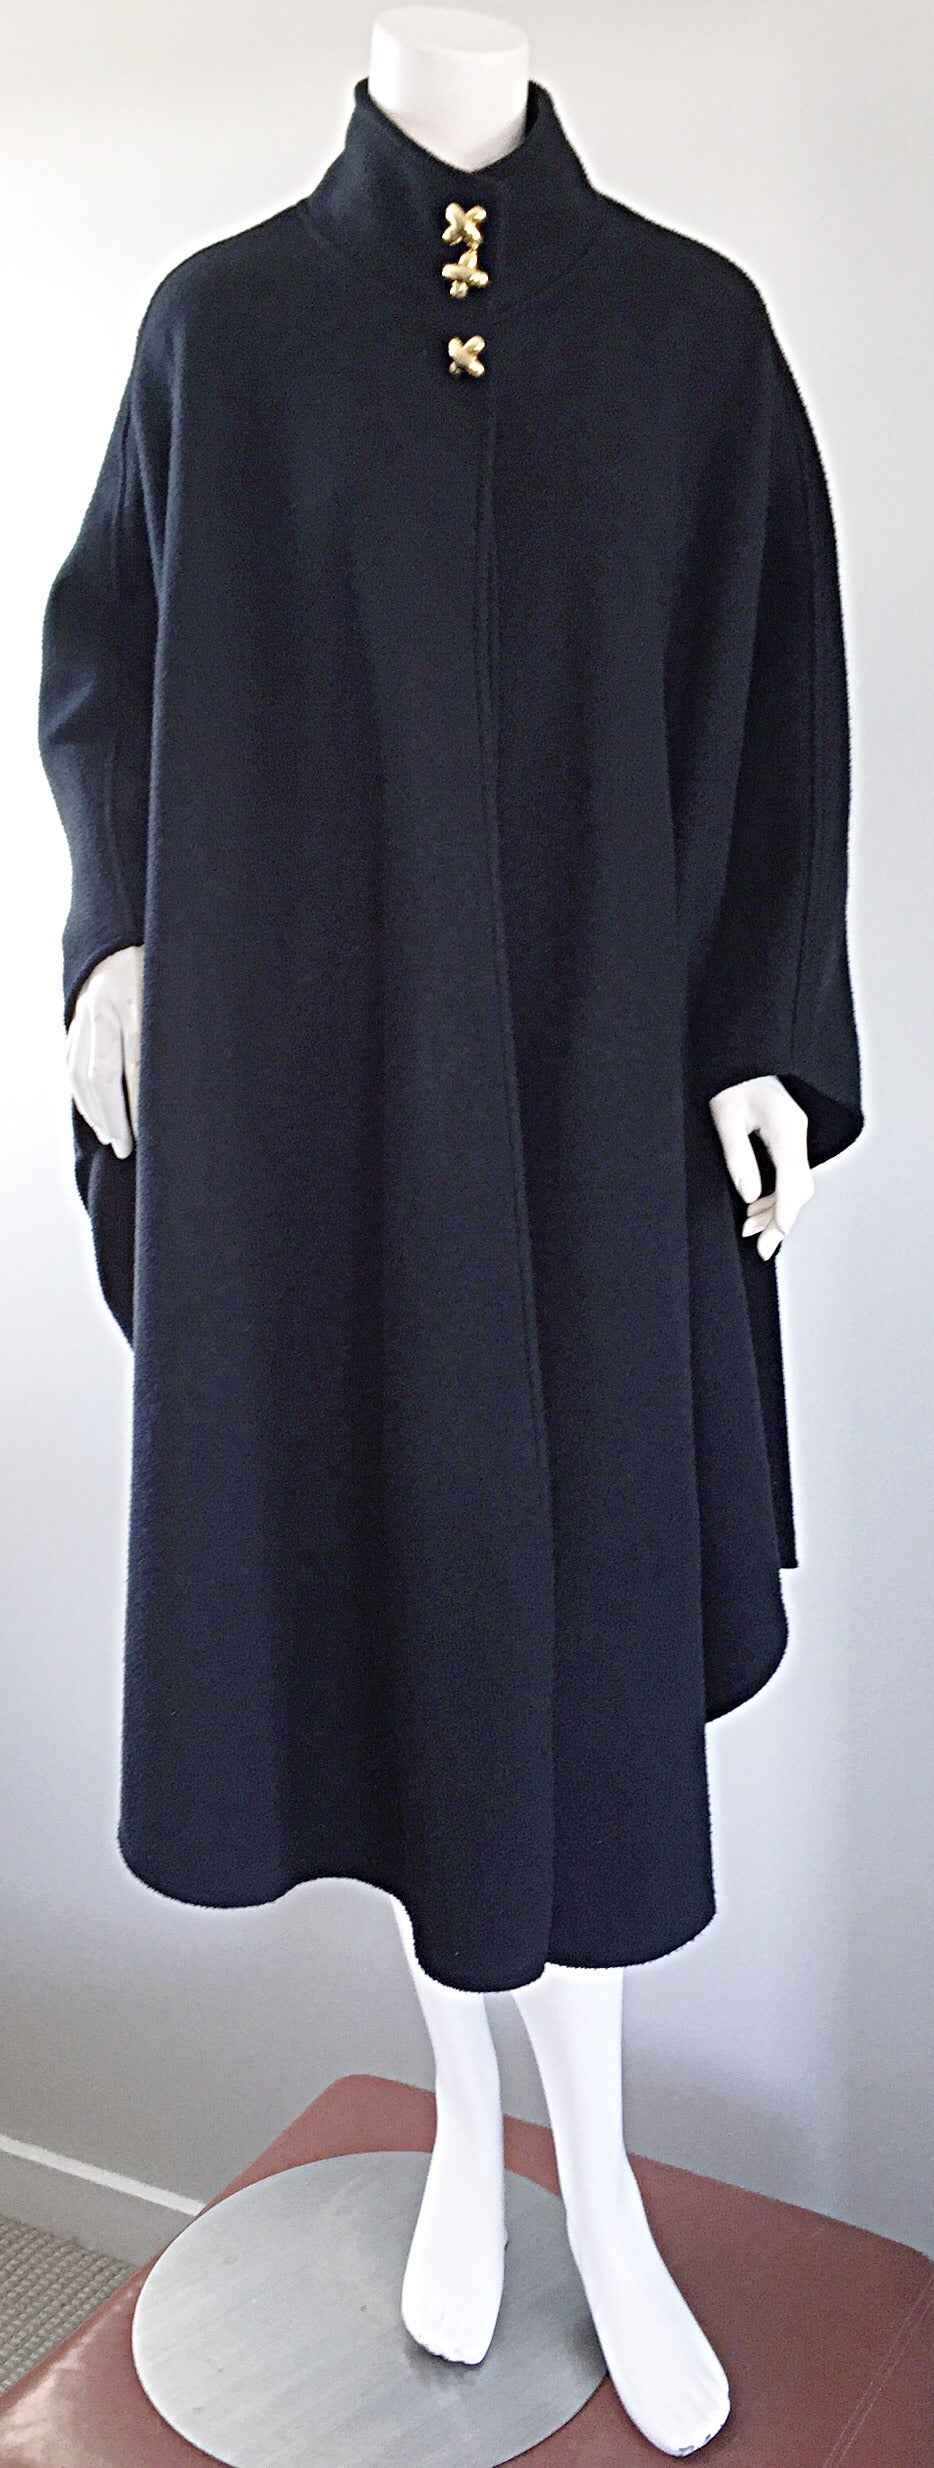 Vintage Lord & Taylor Black Fleece Cape Jacket w/ Gold ' Picasso ' Buttons 2